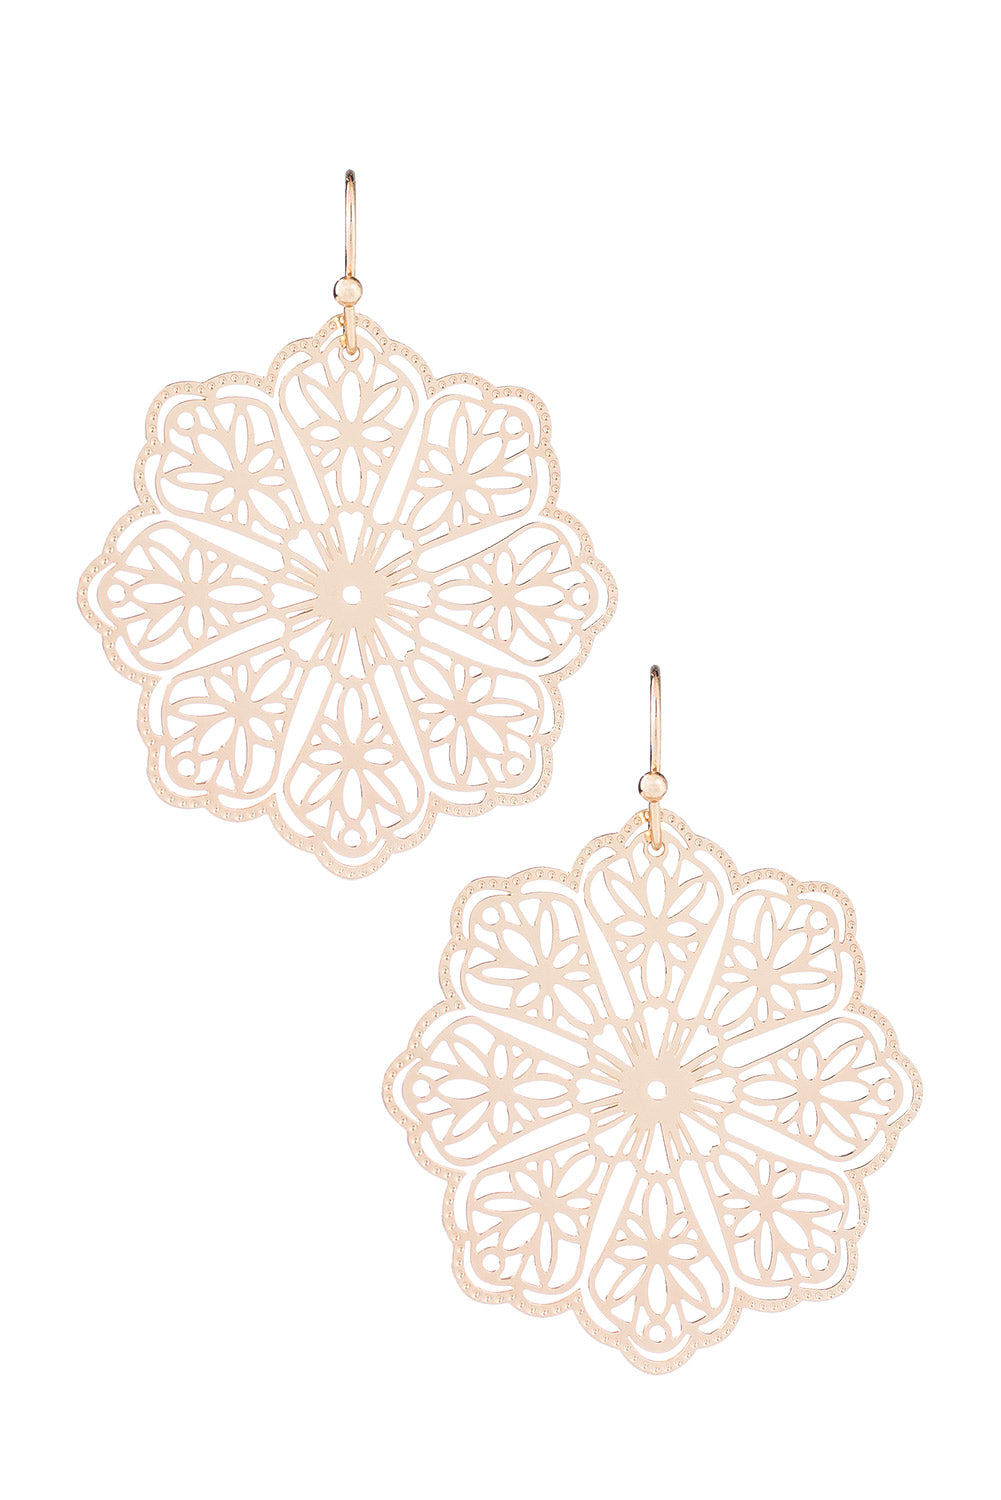 Type 1 Lace Flower Earrings